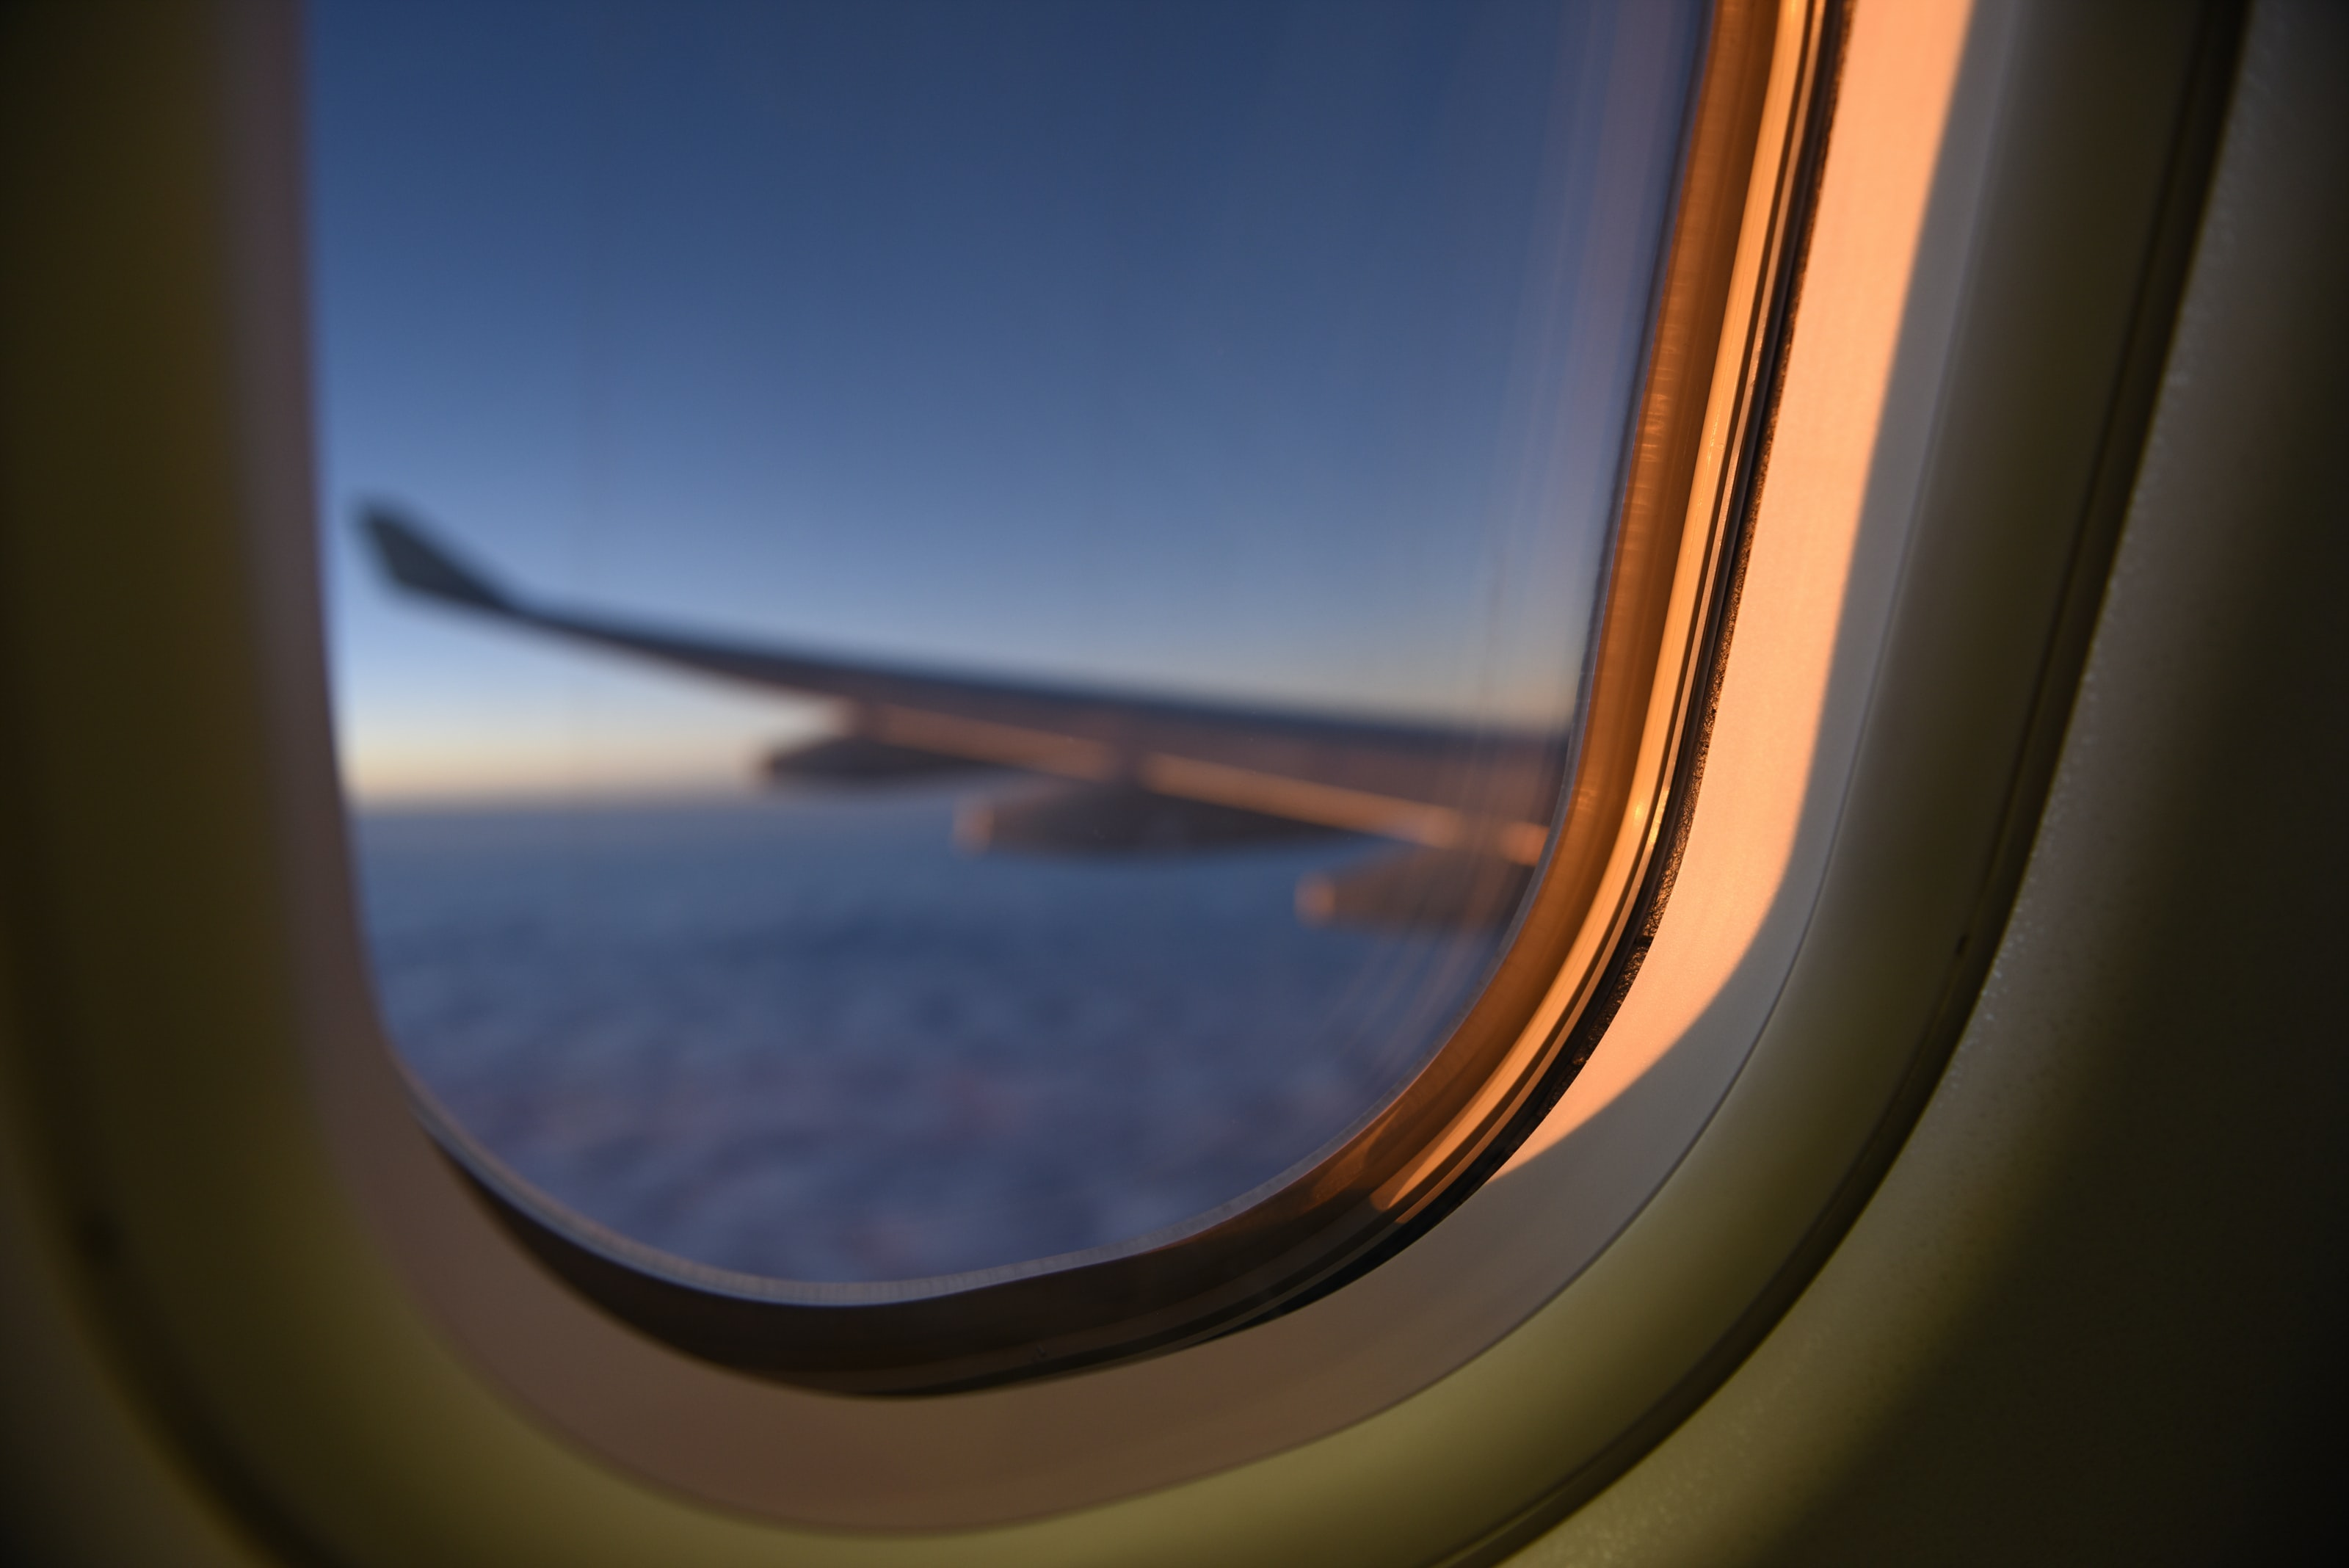 A blurry view from an oval plane window